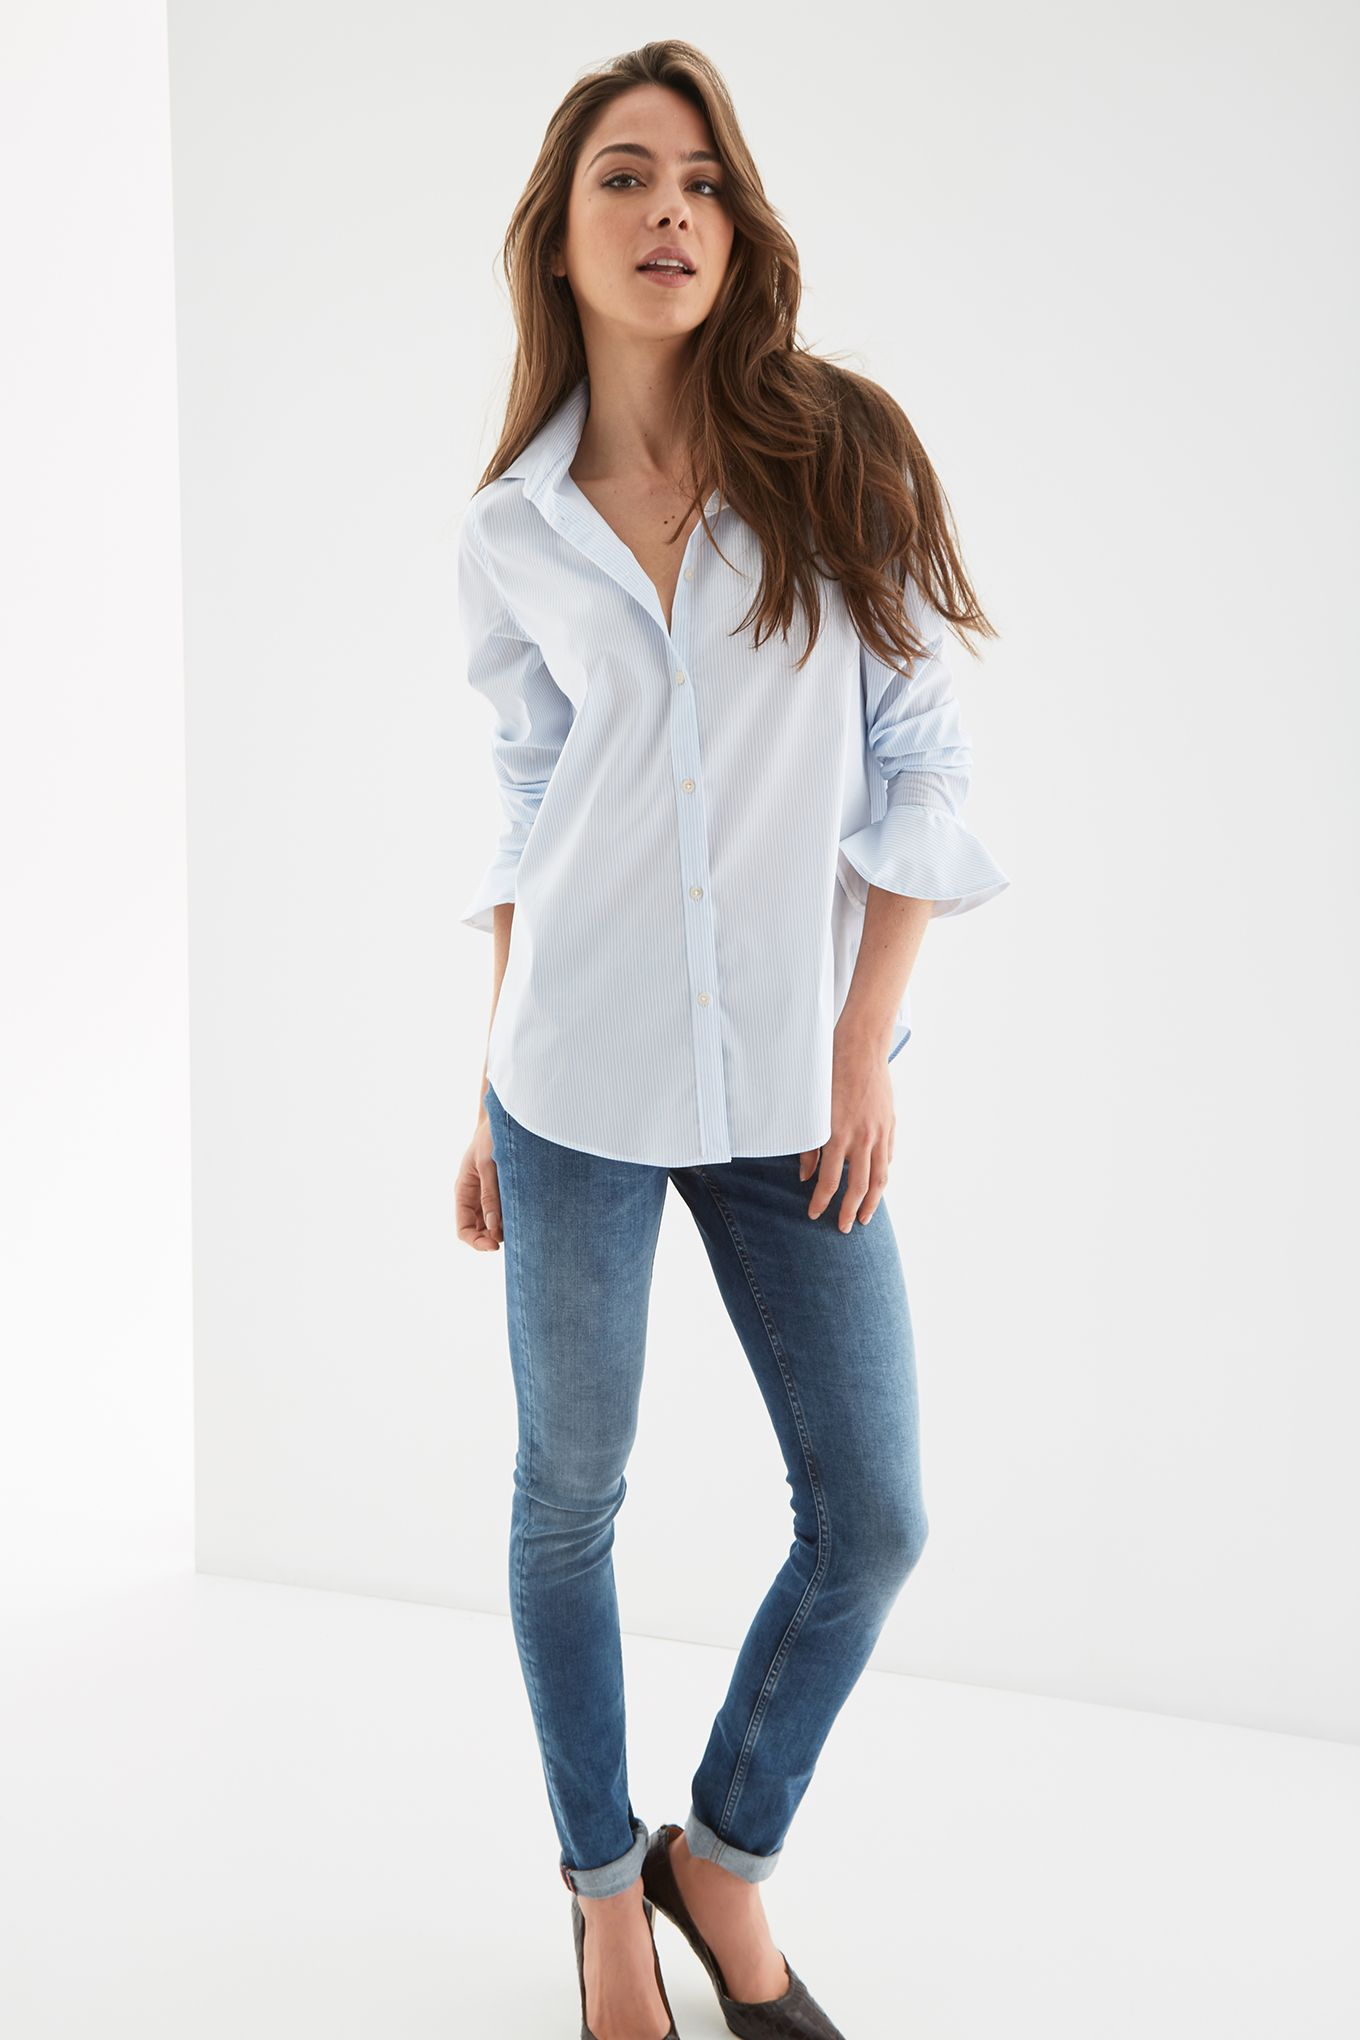 Womens multi-coloured striped casual shirt